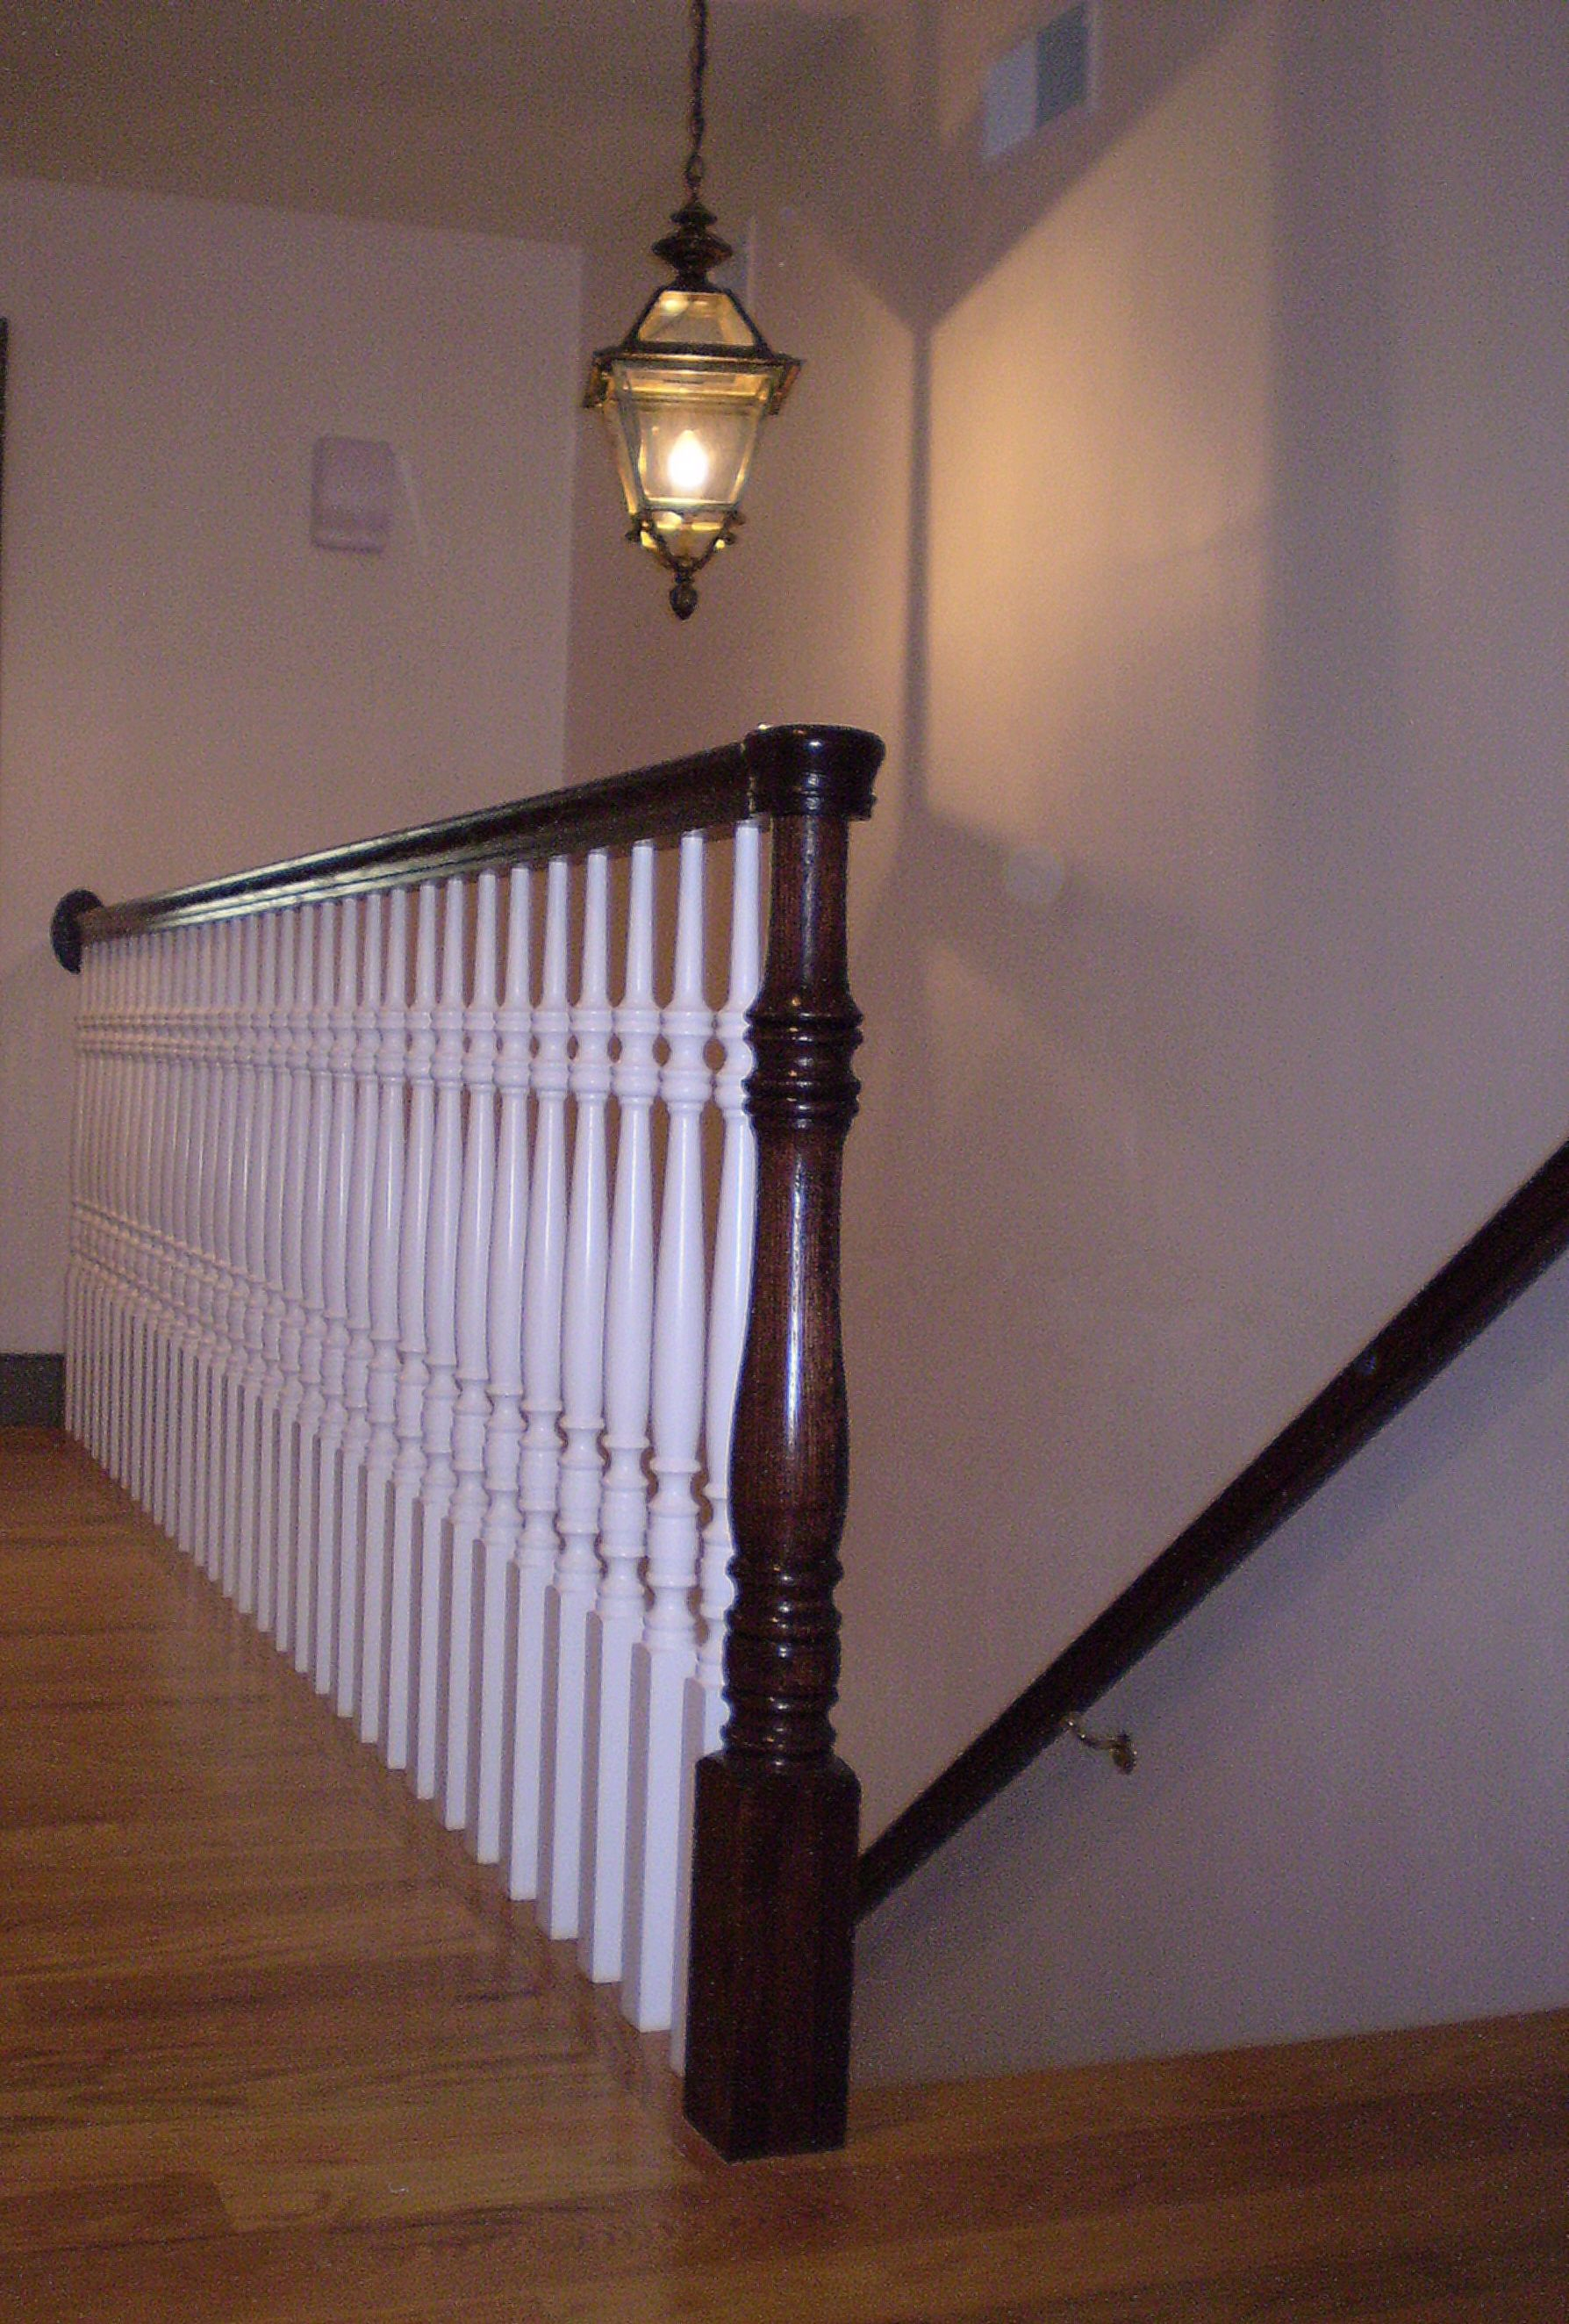 Pre Finished Handrail And Newel Post With Primed Balusters.